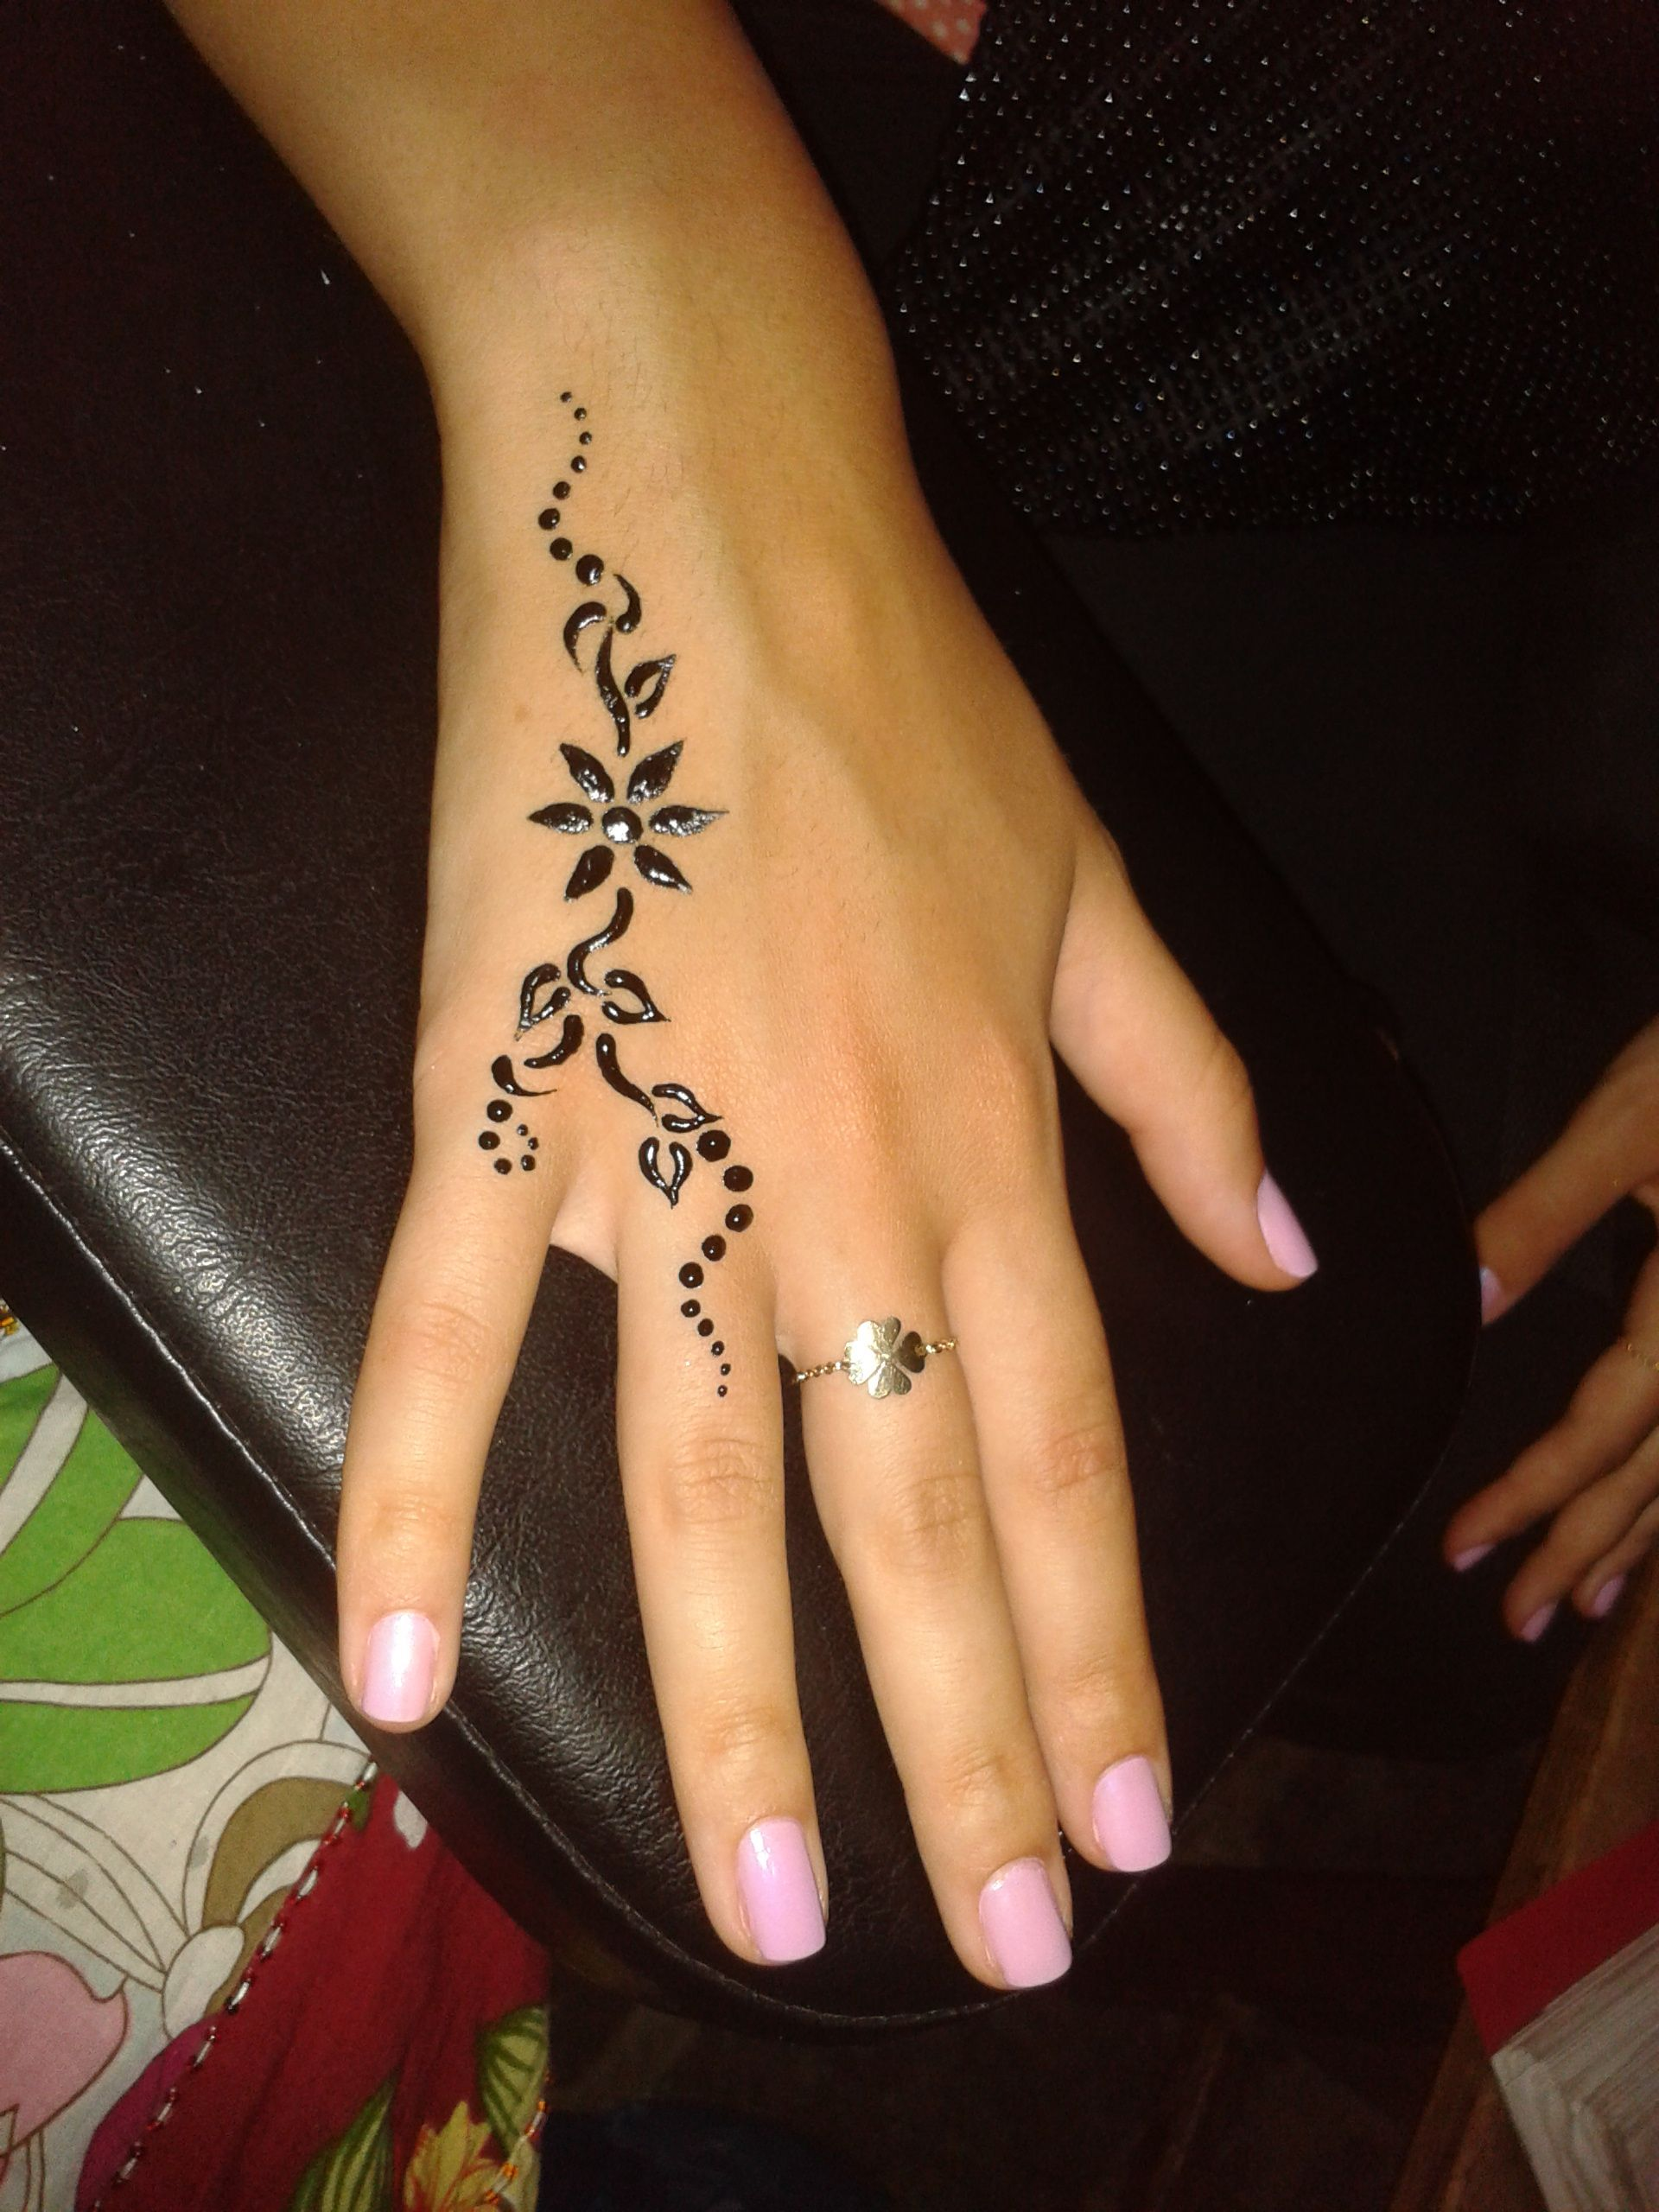 Simple Henna Tattoo On Hand: Made By Delara Bitar Rmeily ( Www.delarts.me )